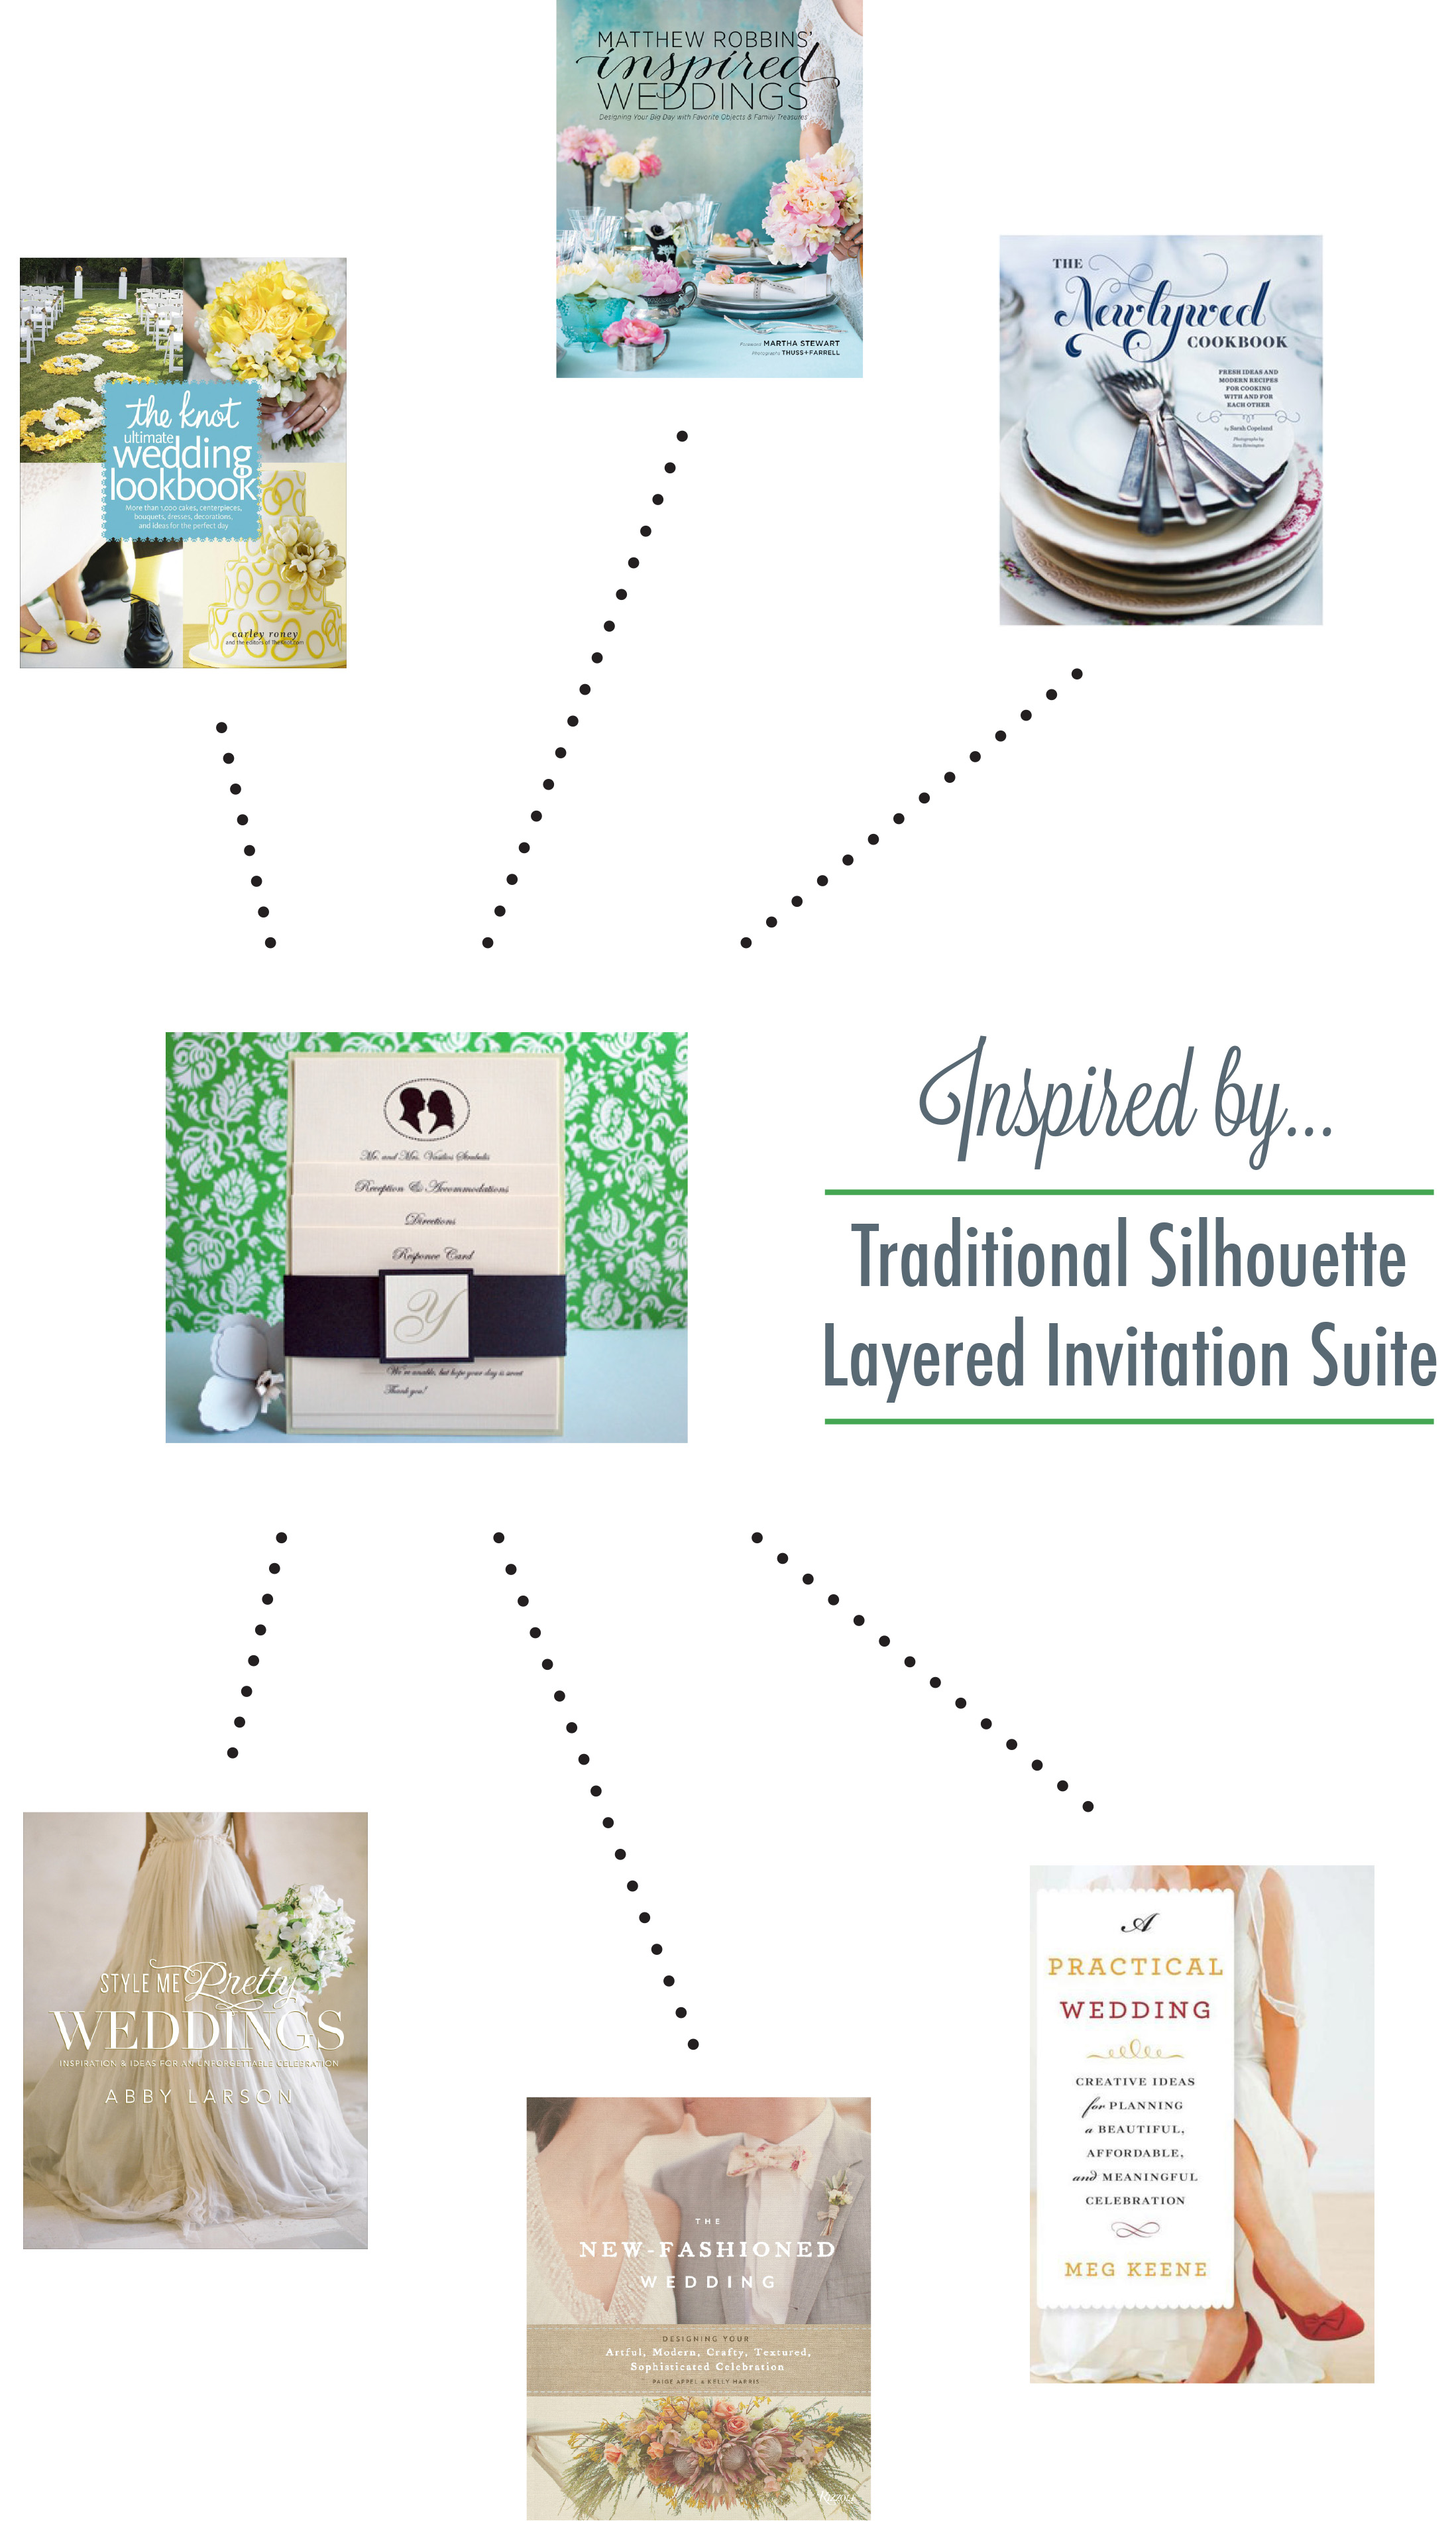 Traditional Silhouette Layered Invitation Suite